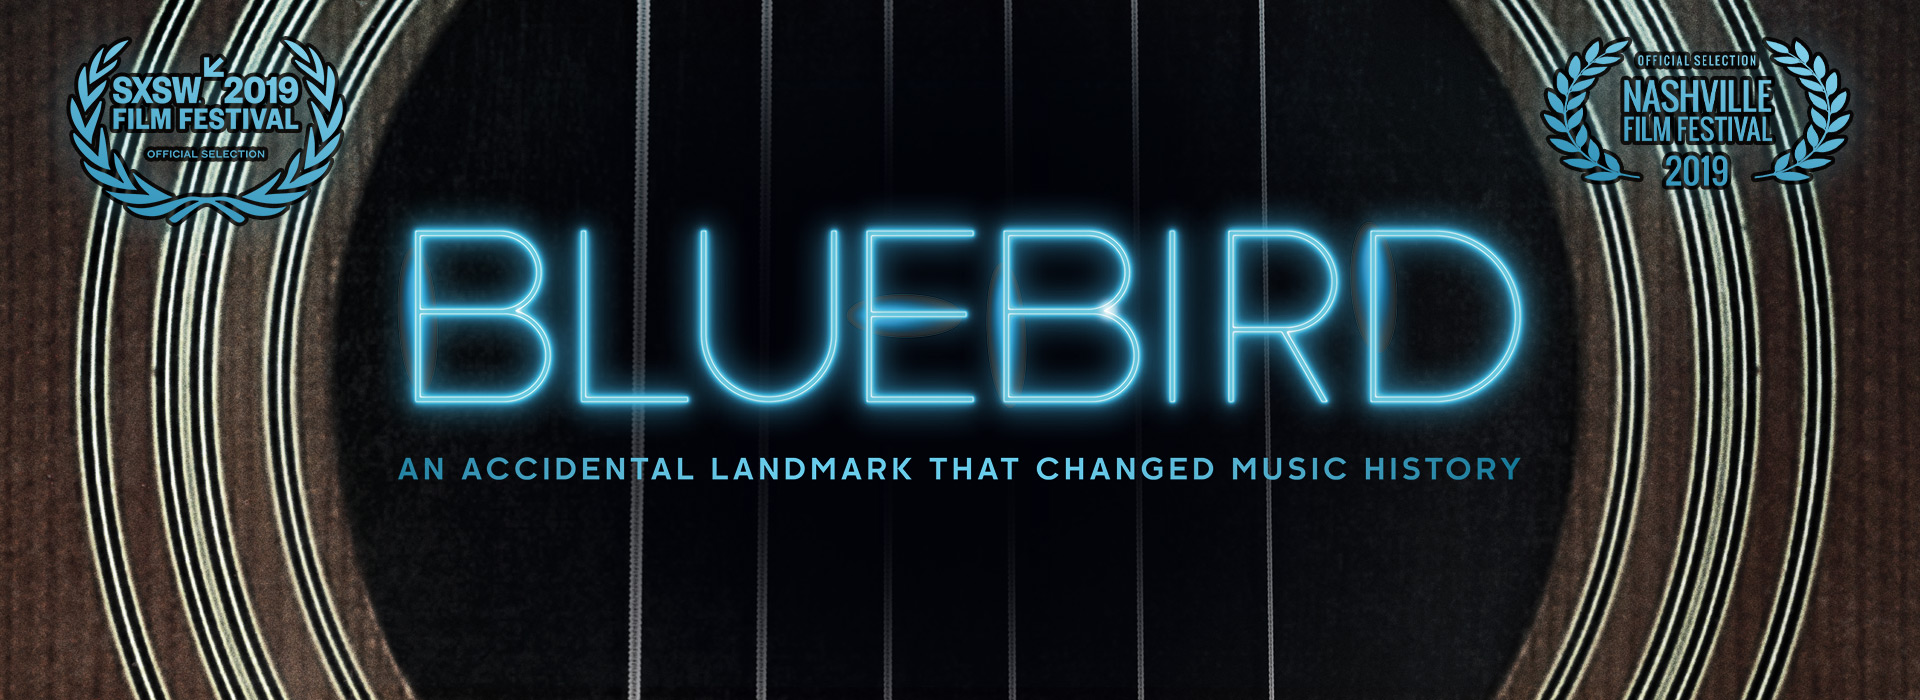 Bluebird - An Accidental Landmark That Changed Music History